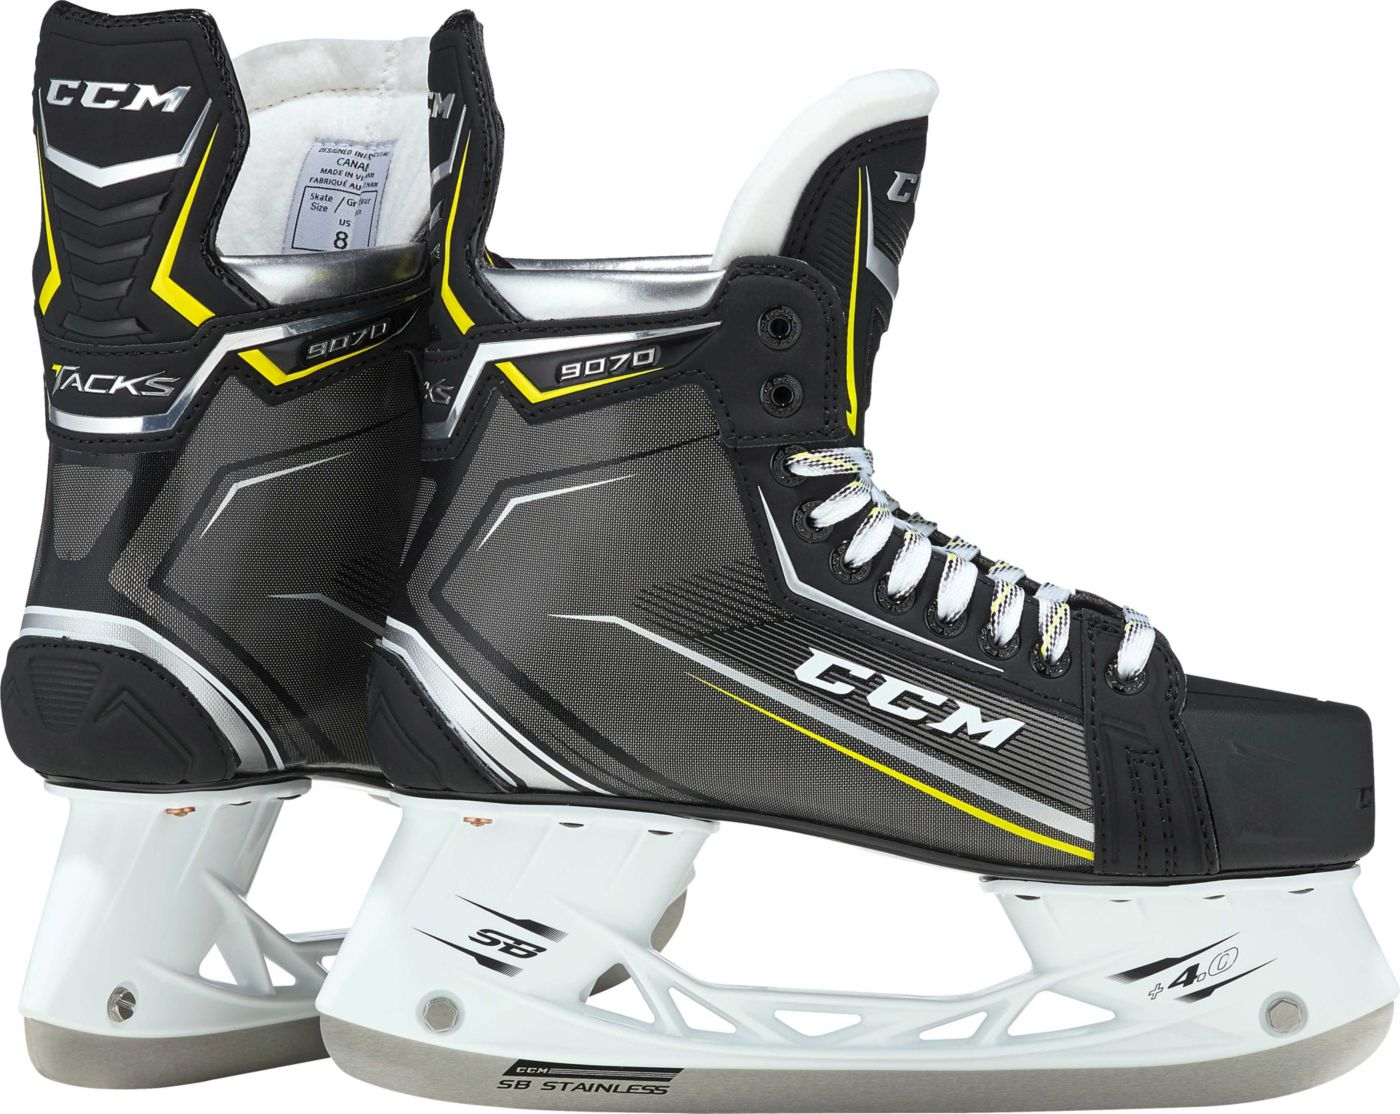 CCM Junior Tacks 9070 Ice Hockey Skates